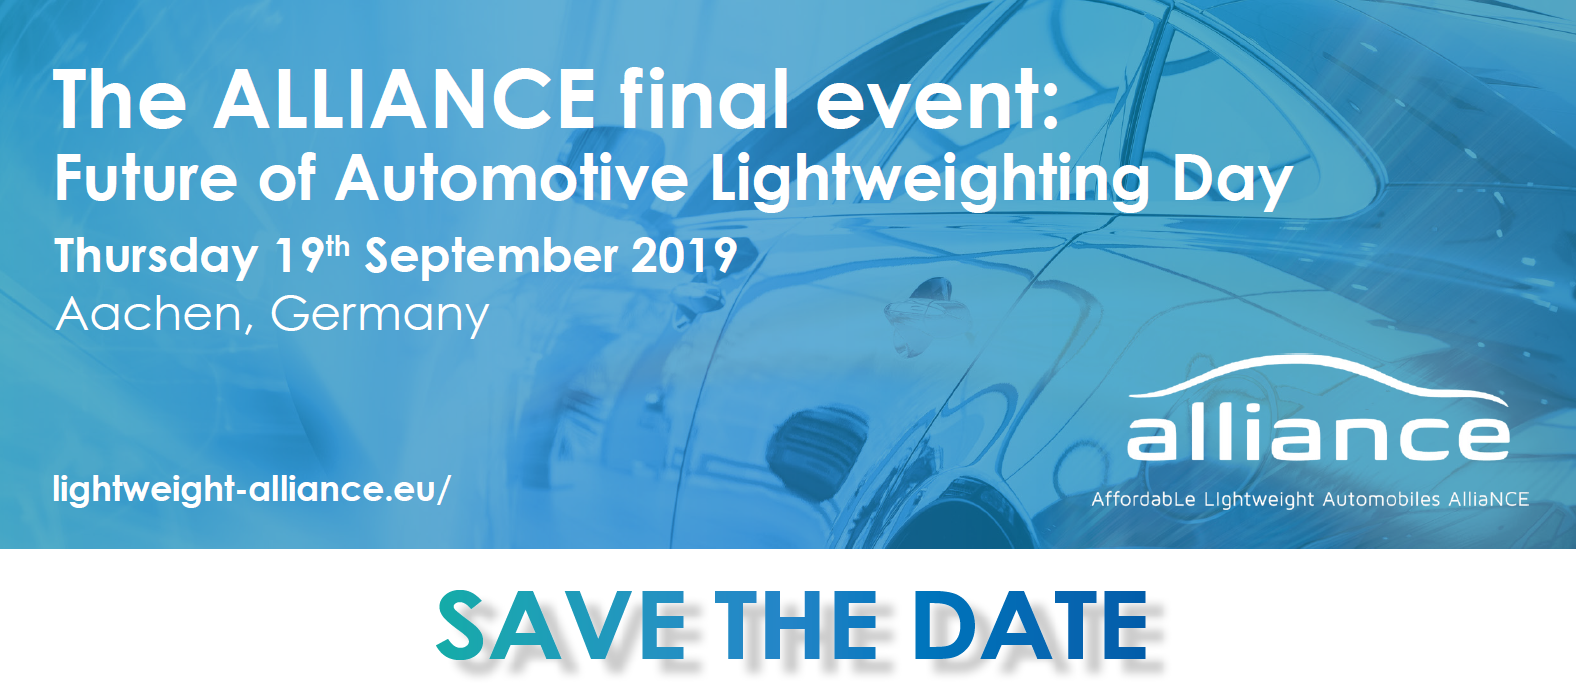 The ALLIANCE final event: Future of Automotive